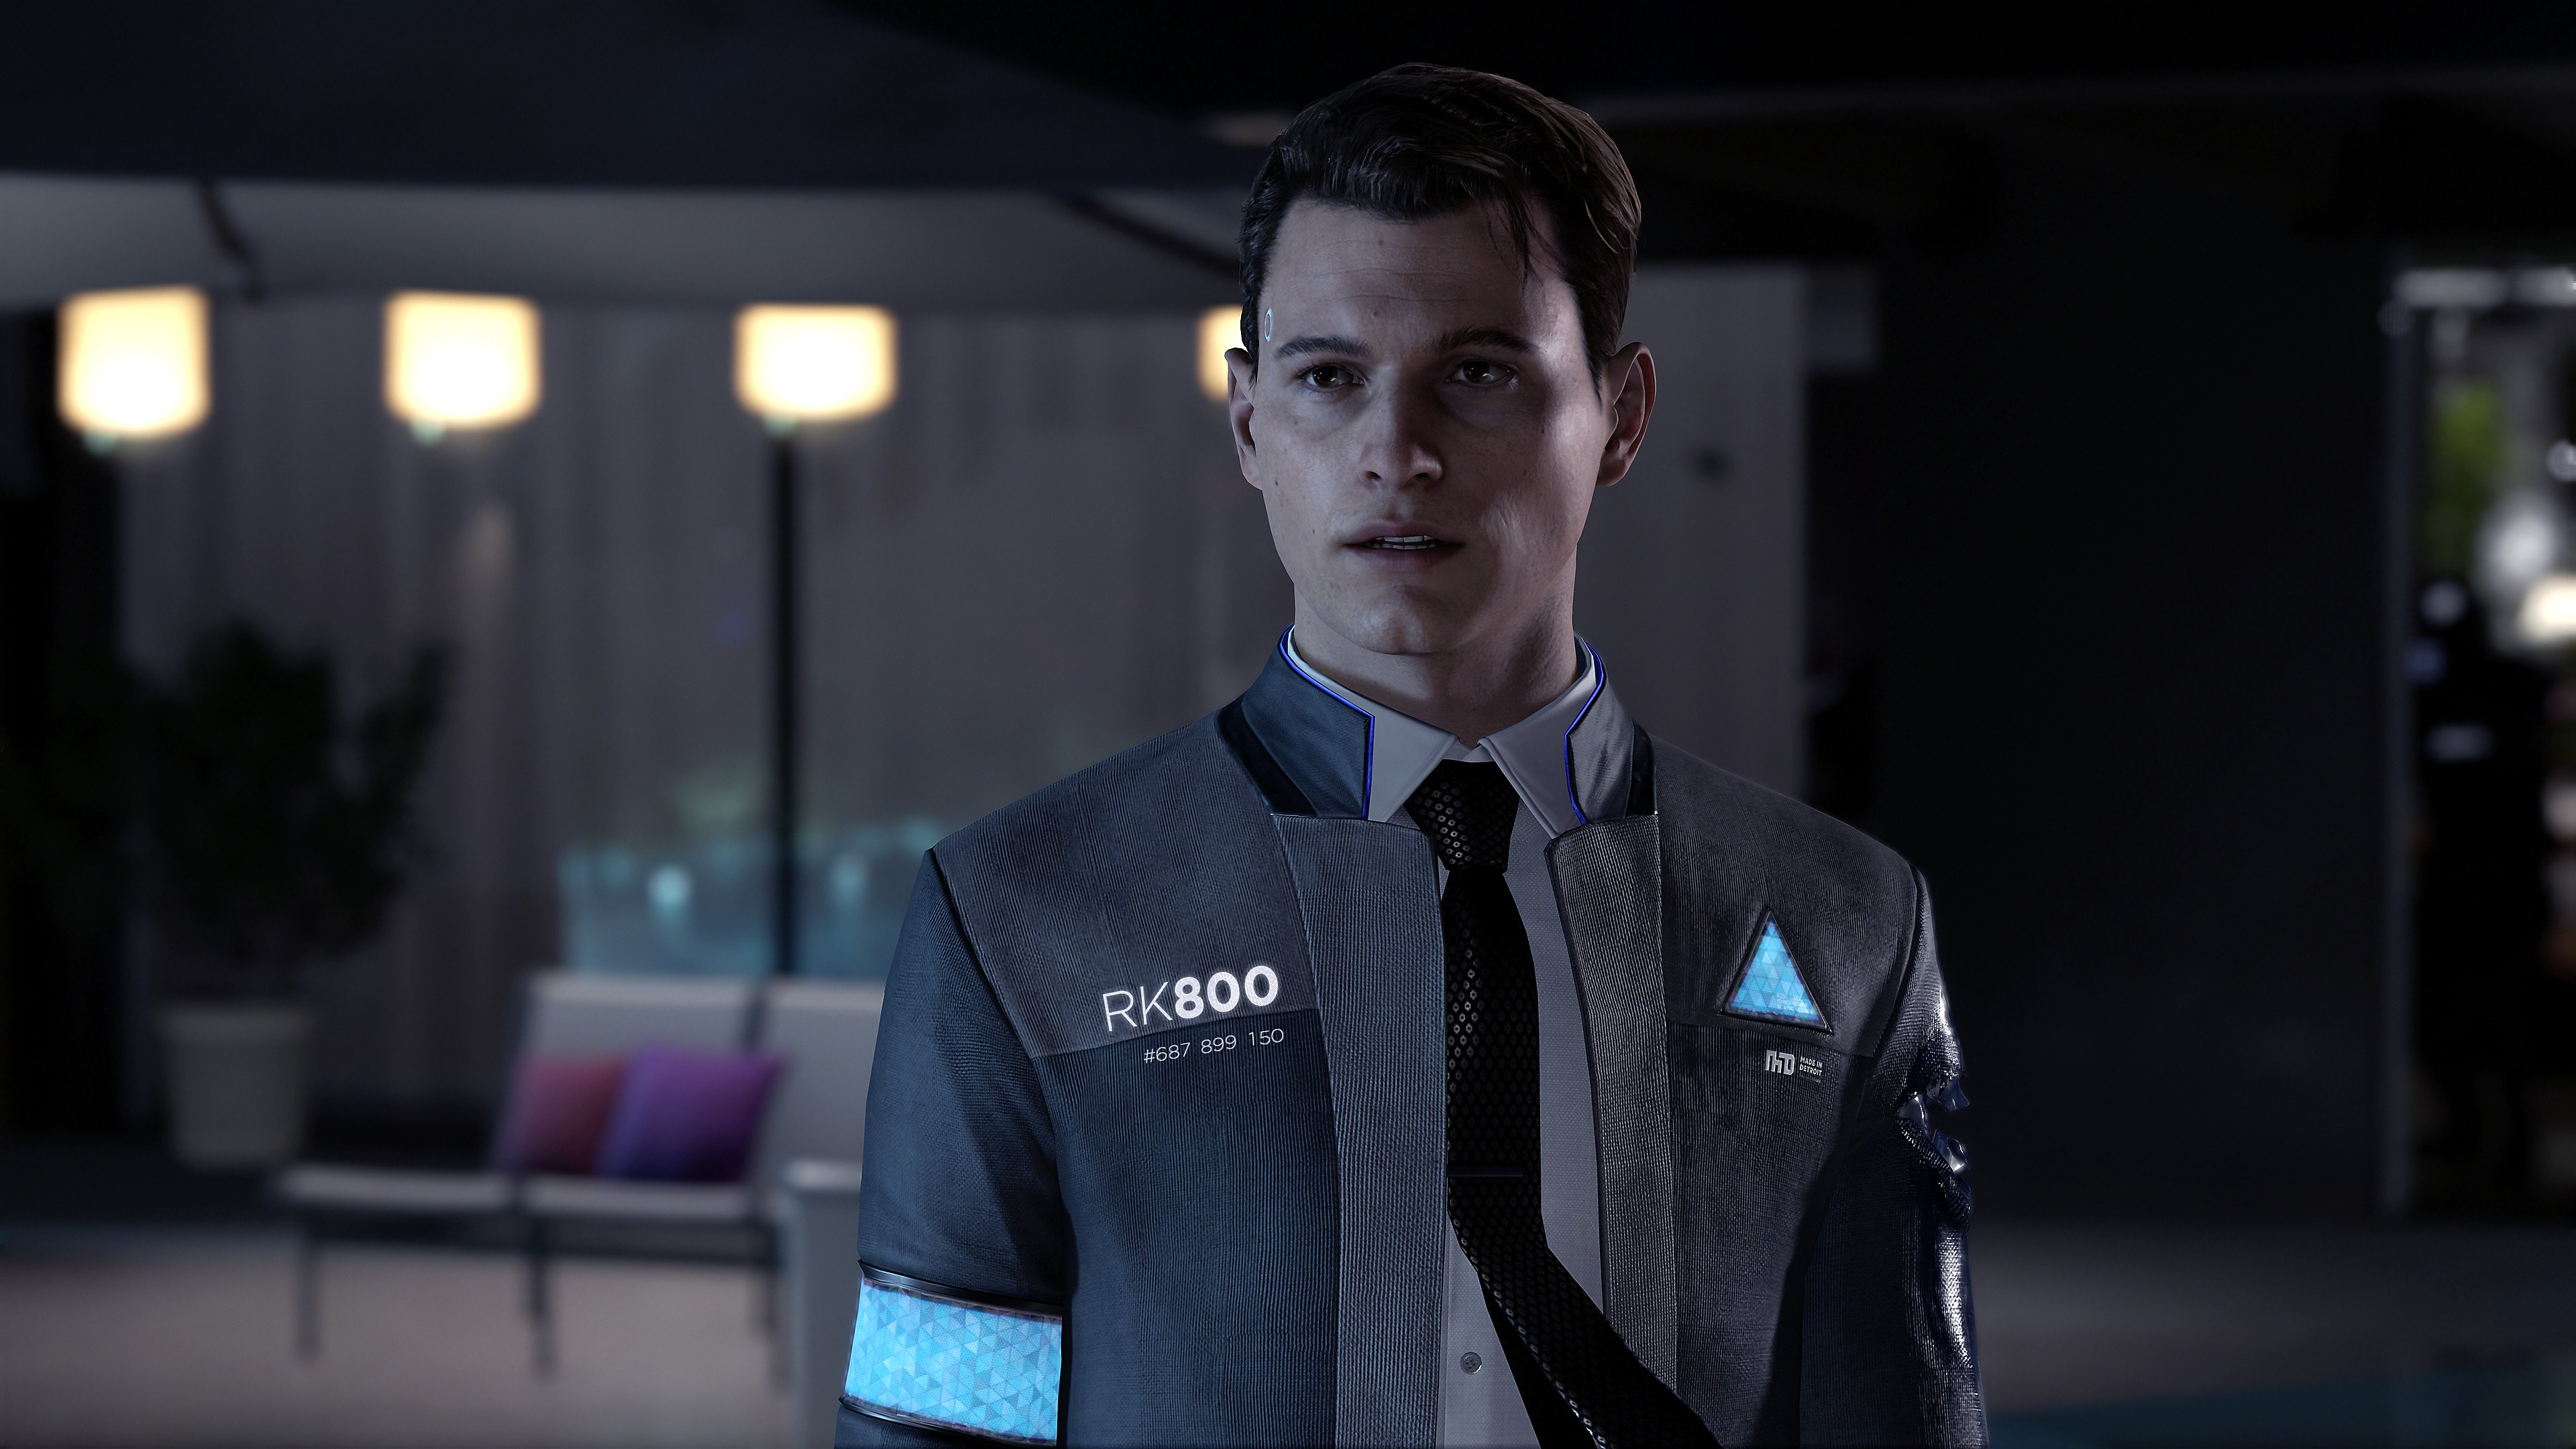 Quantic Dream titles like Detroit: Become Human will release as timed exclusives on the Epic Games Store.